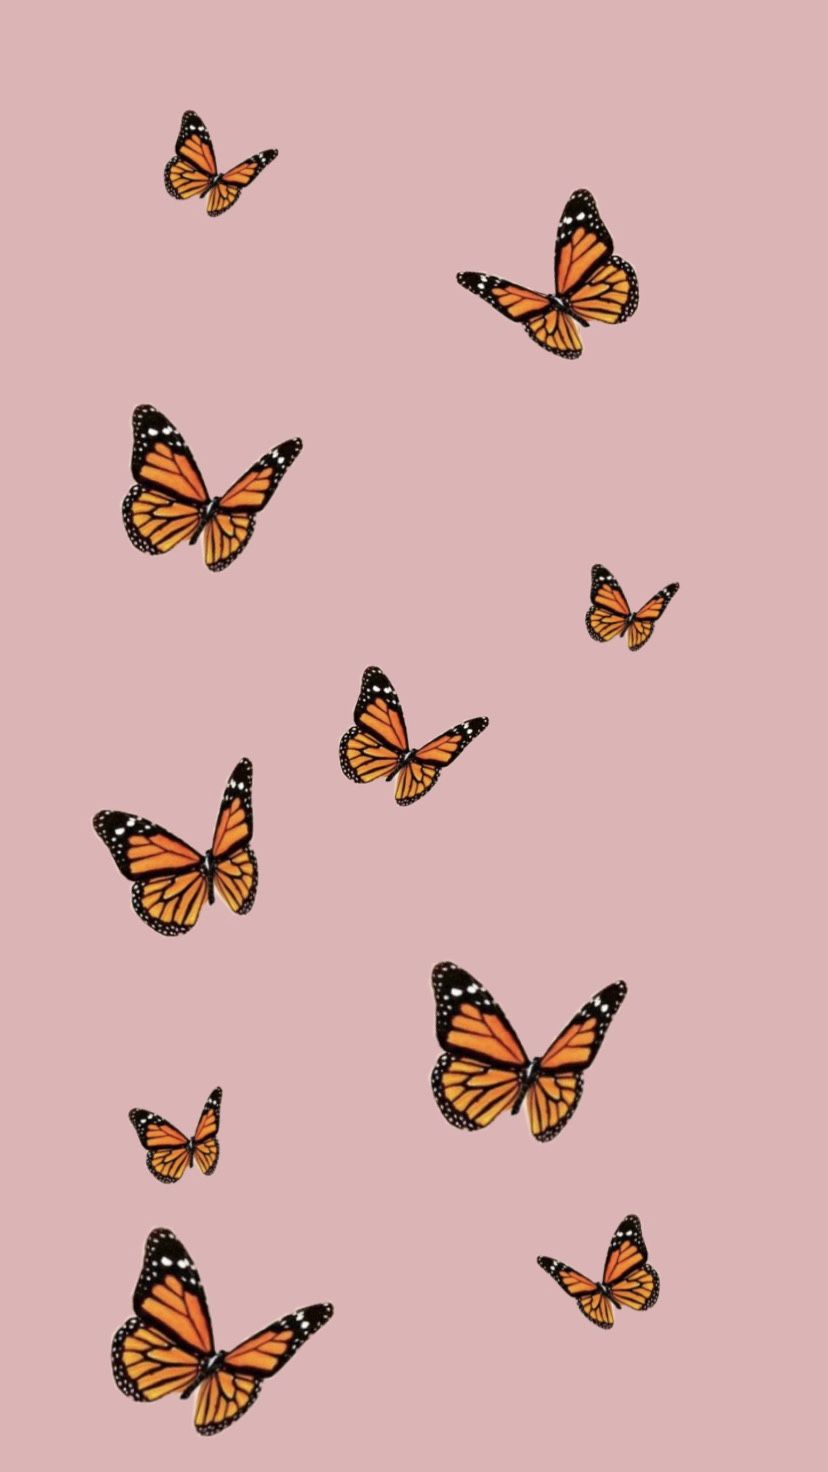 Butterfly Wallpaper Iphone 11